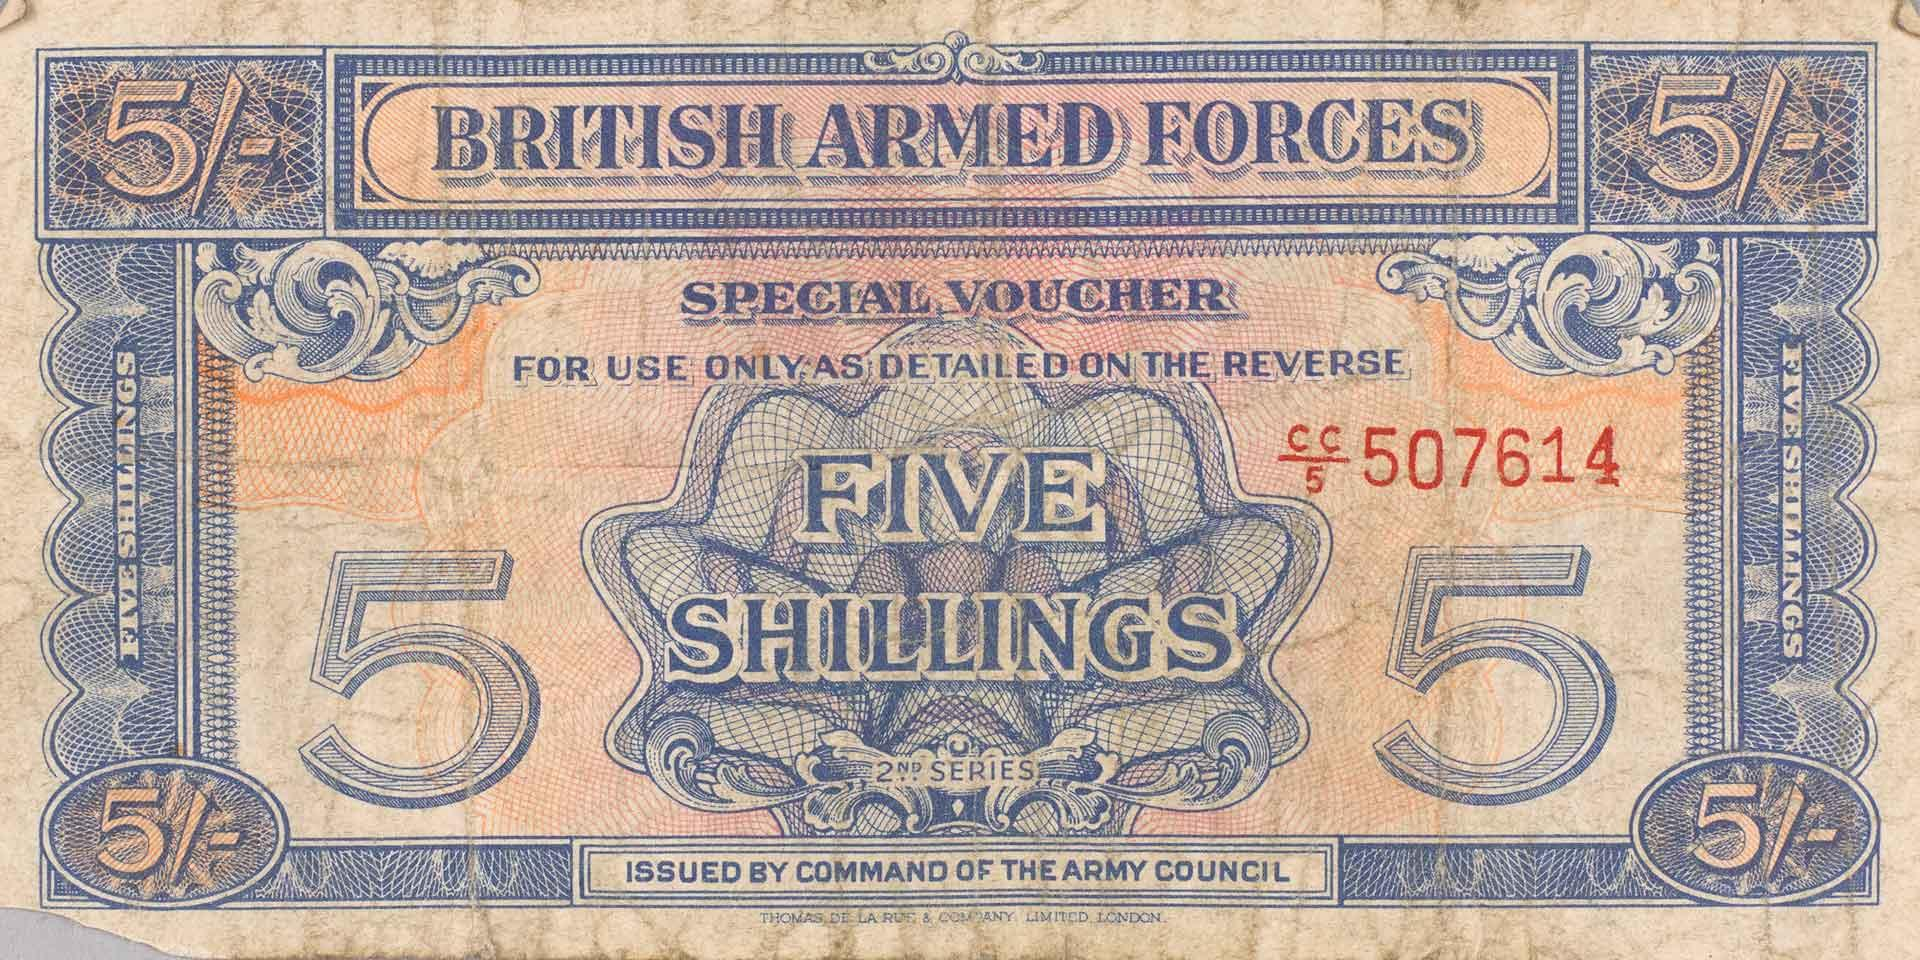 5 Shilling British Armed Forces Voucher, 1948